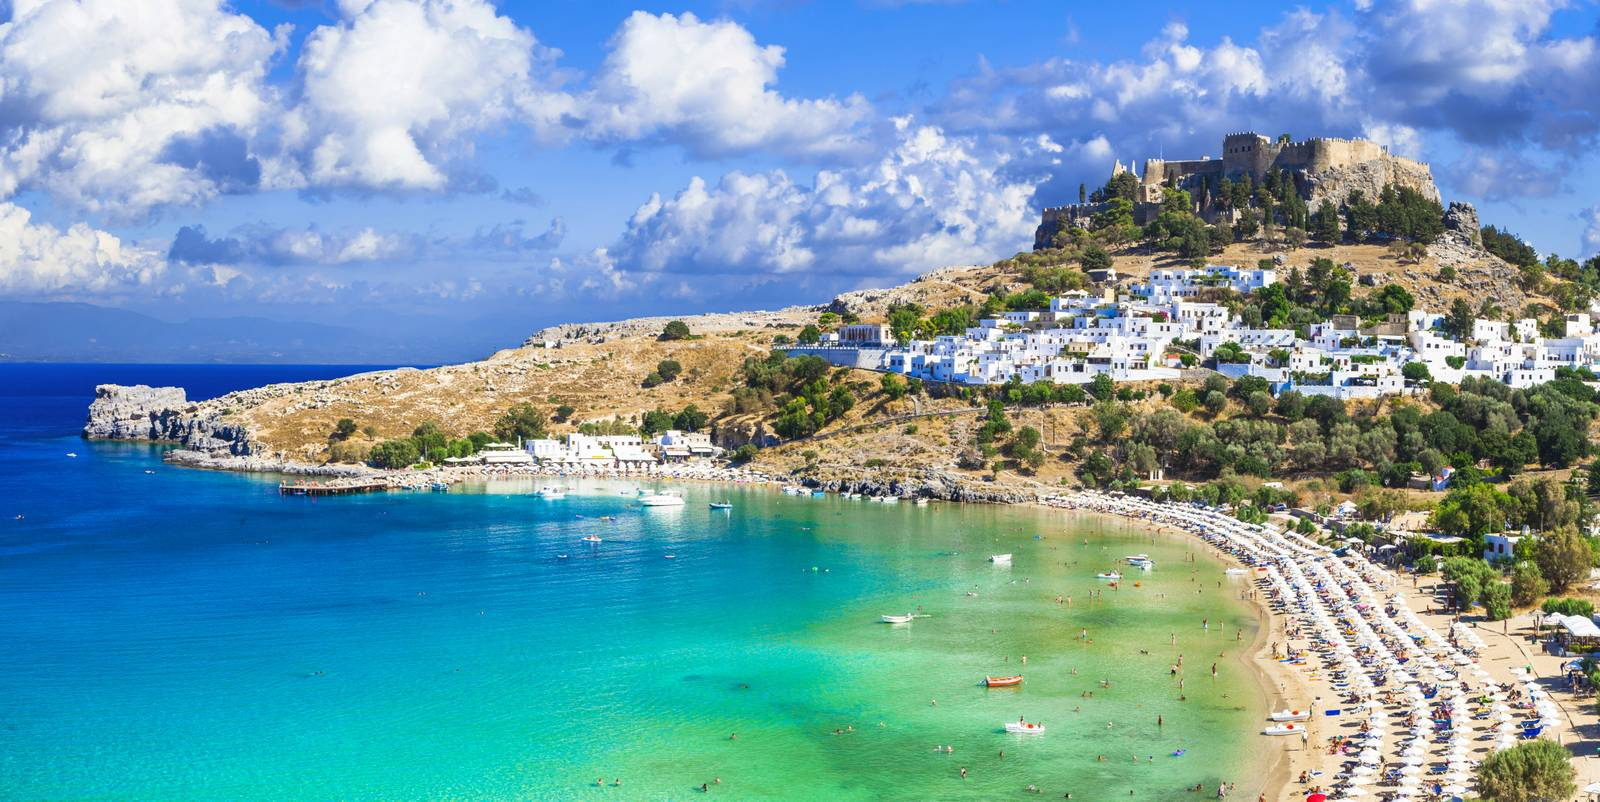 Rhodes island Greece rizos_lindos_cruises-3-min Top things to do in rhodes greece Activities Beaches Rhodes best hotels Rhodes best sight to visit Rhodes best sights Rhodes Island places